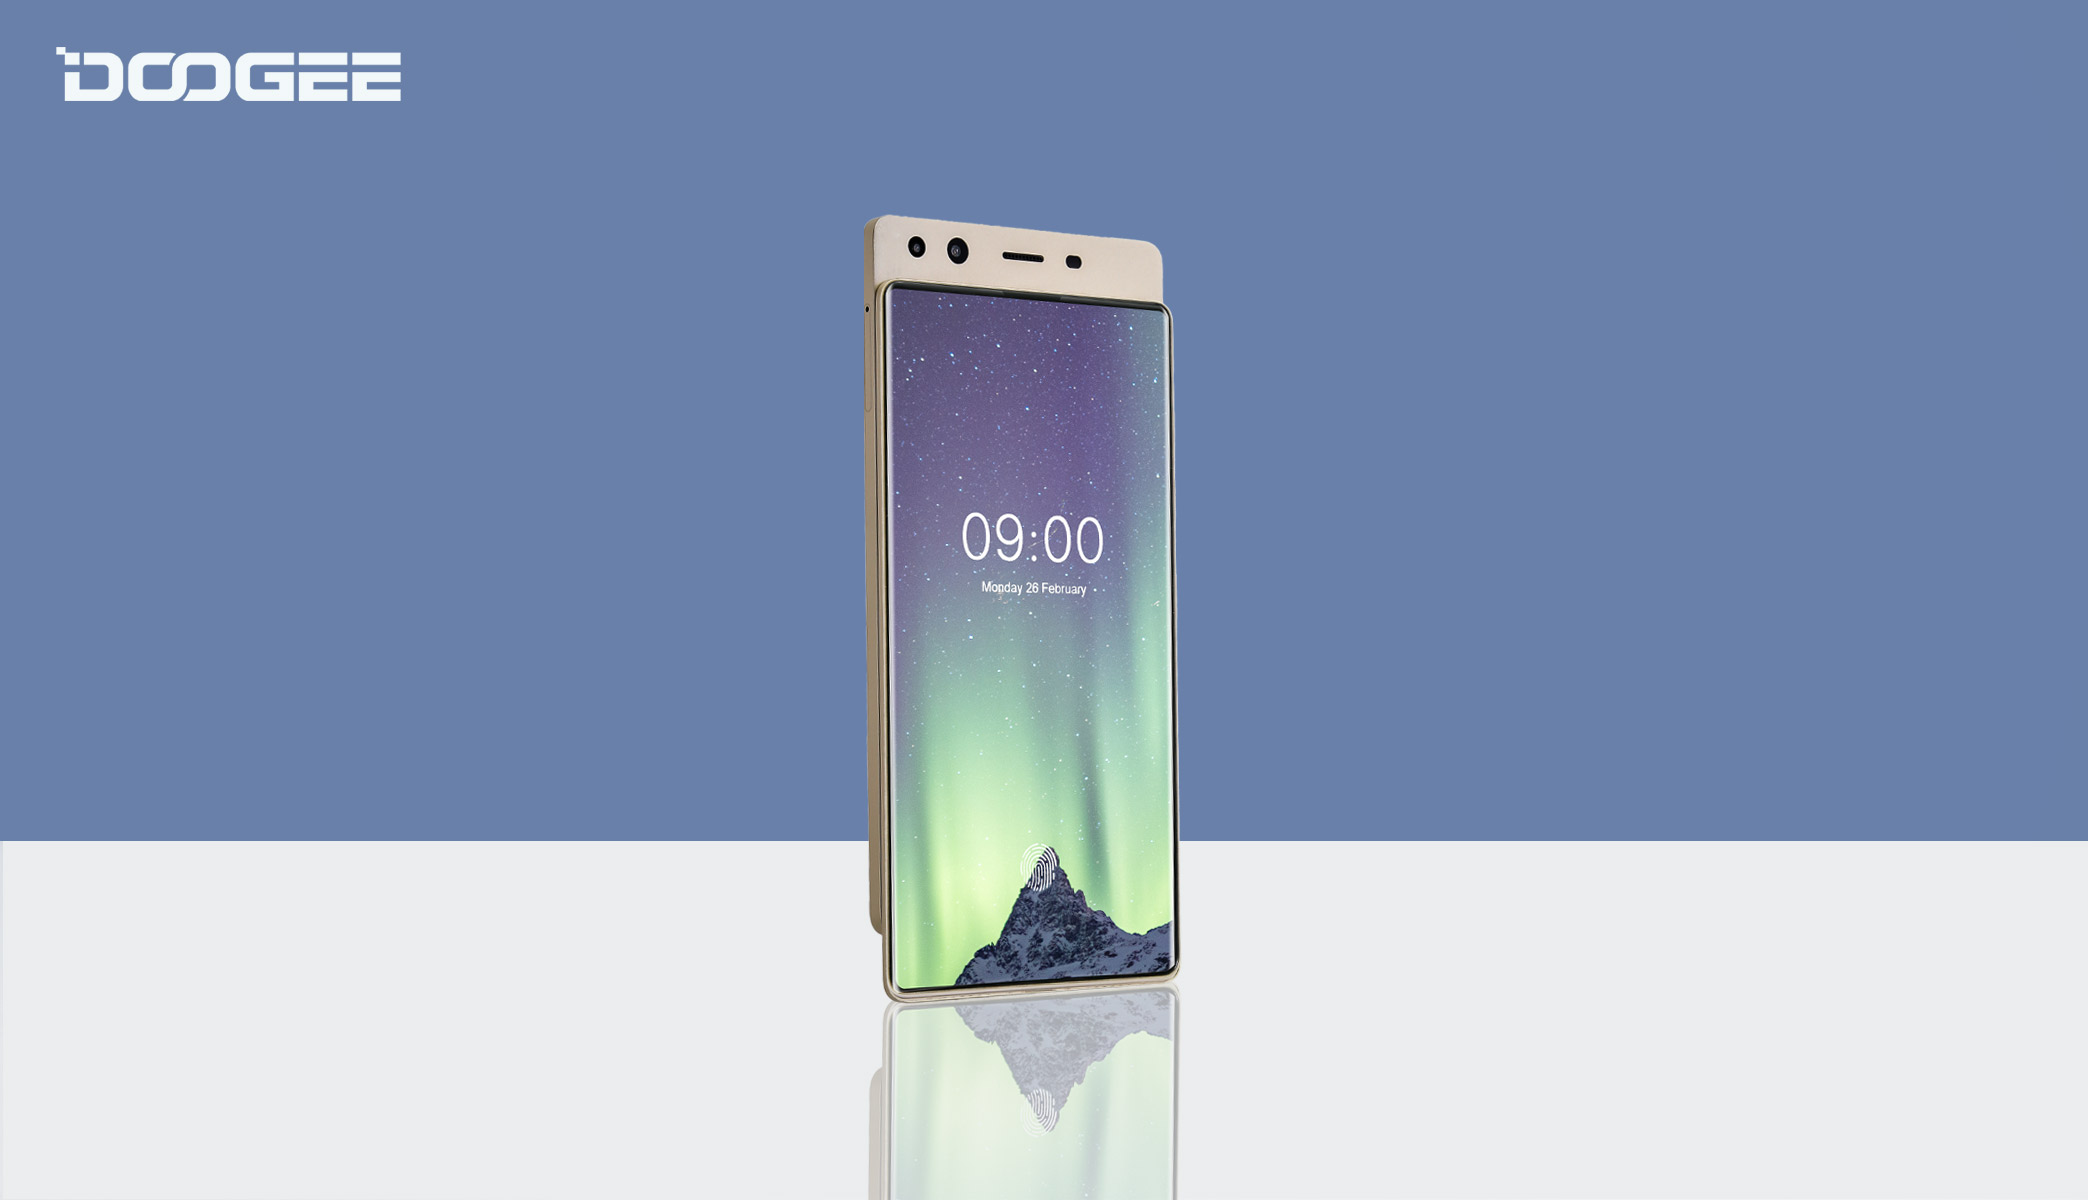 doogee bl9000 with Four Revolutionary Doogee Smartphones Hit The Market With Futuristic 20429838 on Wiko Lenny 5 further Ad 9 Small additionally 111 additionally 121 together with Technische Daten.